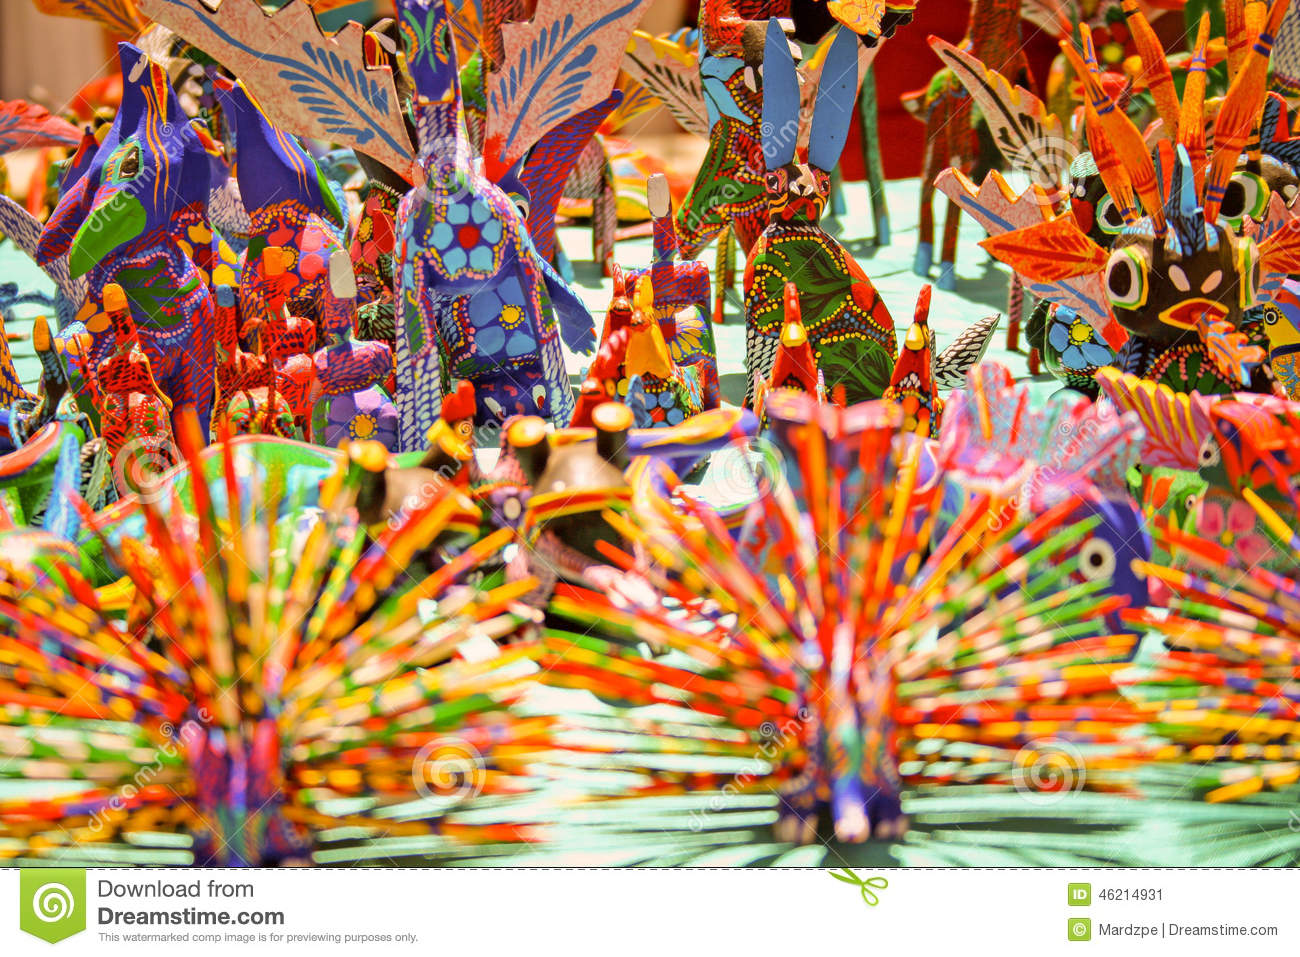 Alebrijes, typical Mexican crafts from Oaxaca